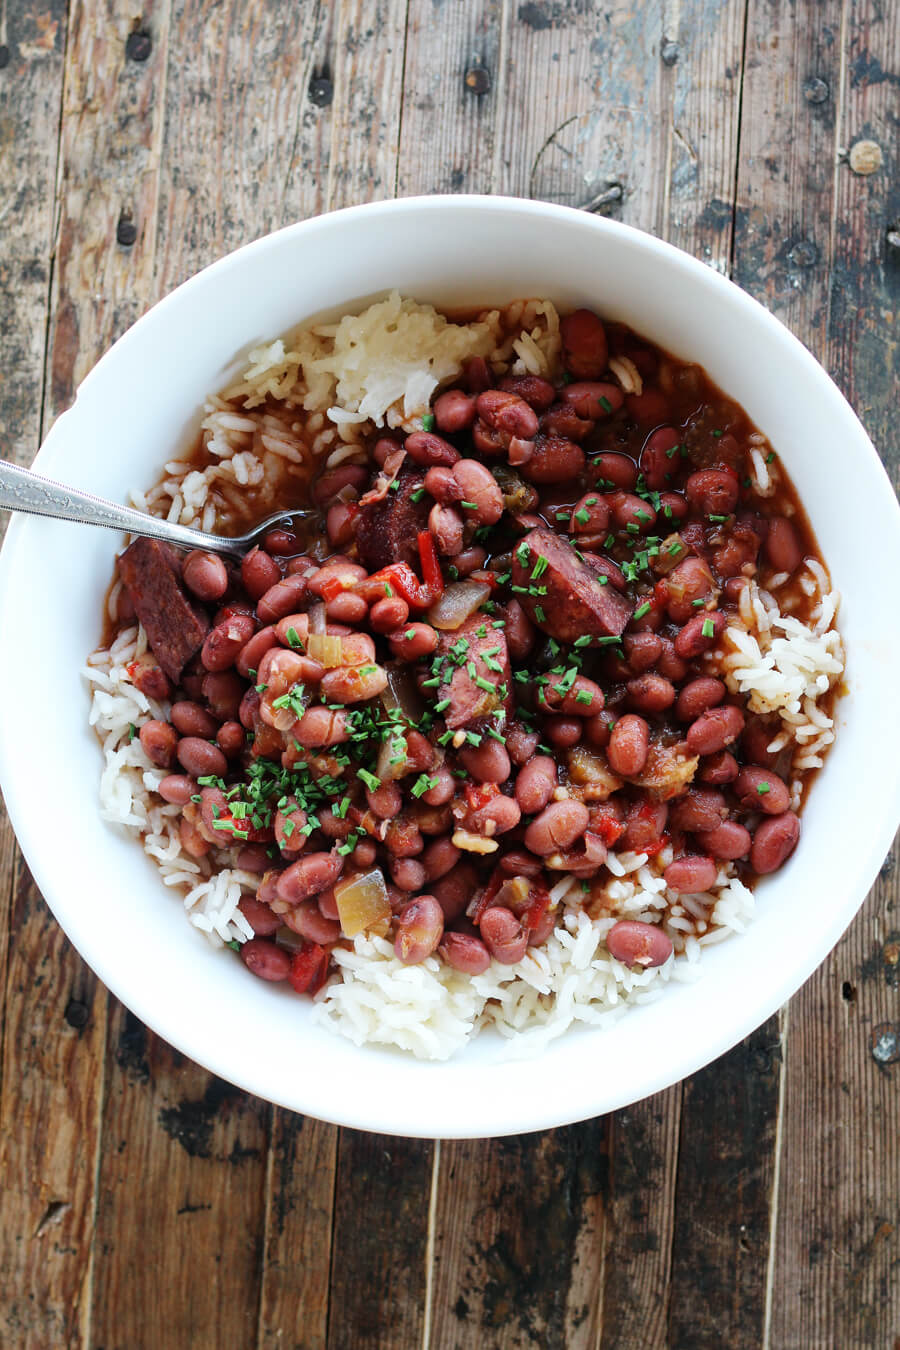 Red beans with smoked sausage served over white rice